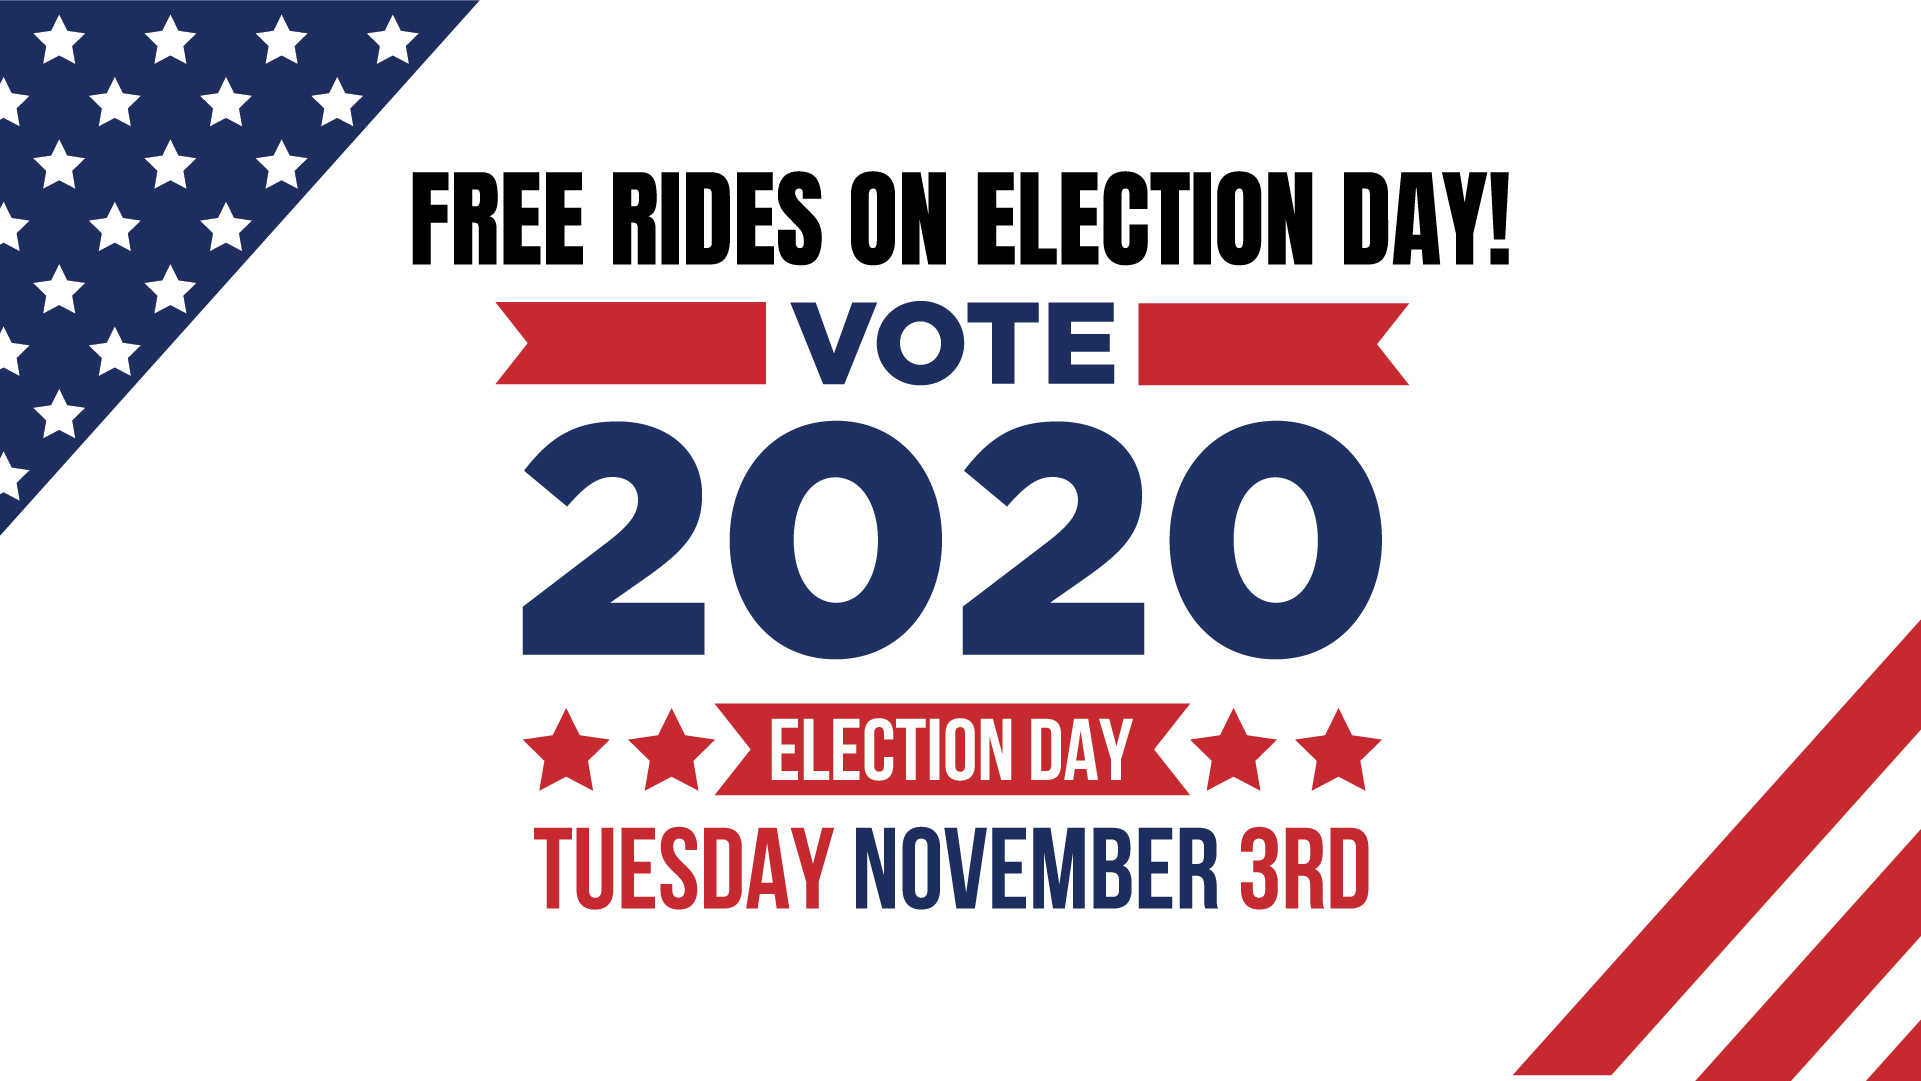 Golden Empire Transit offering FREE rides on Election Day Tuesday, November 3, 2020